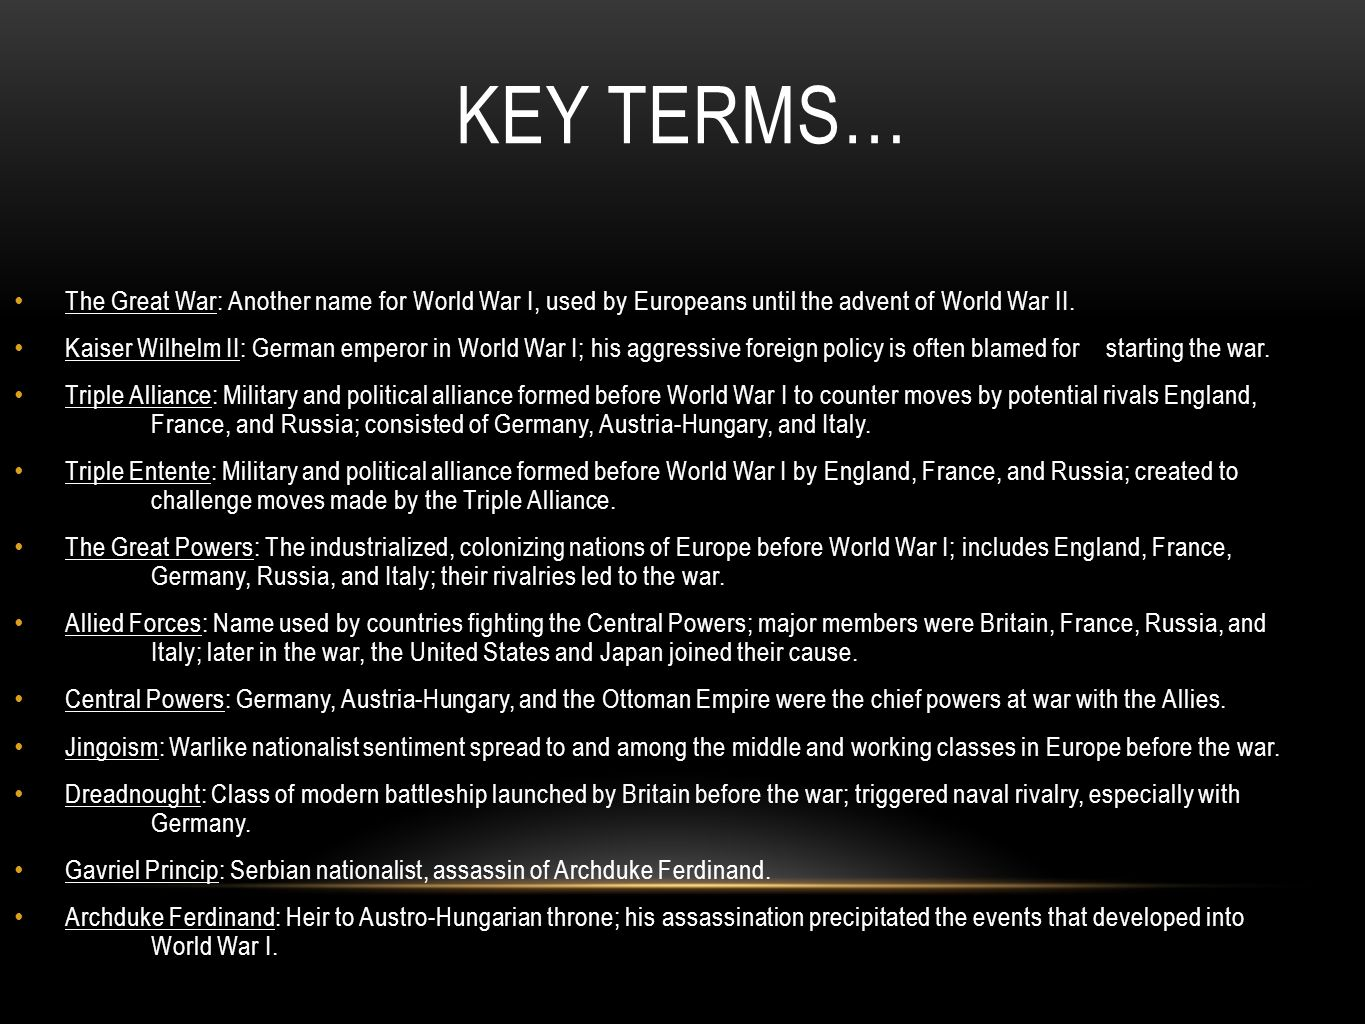 KEY TERMS… The Great War: Another name for World War I, used by Europeans until the advent of World War II.